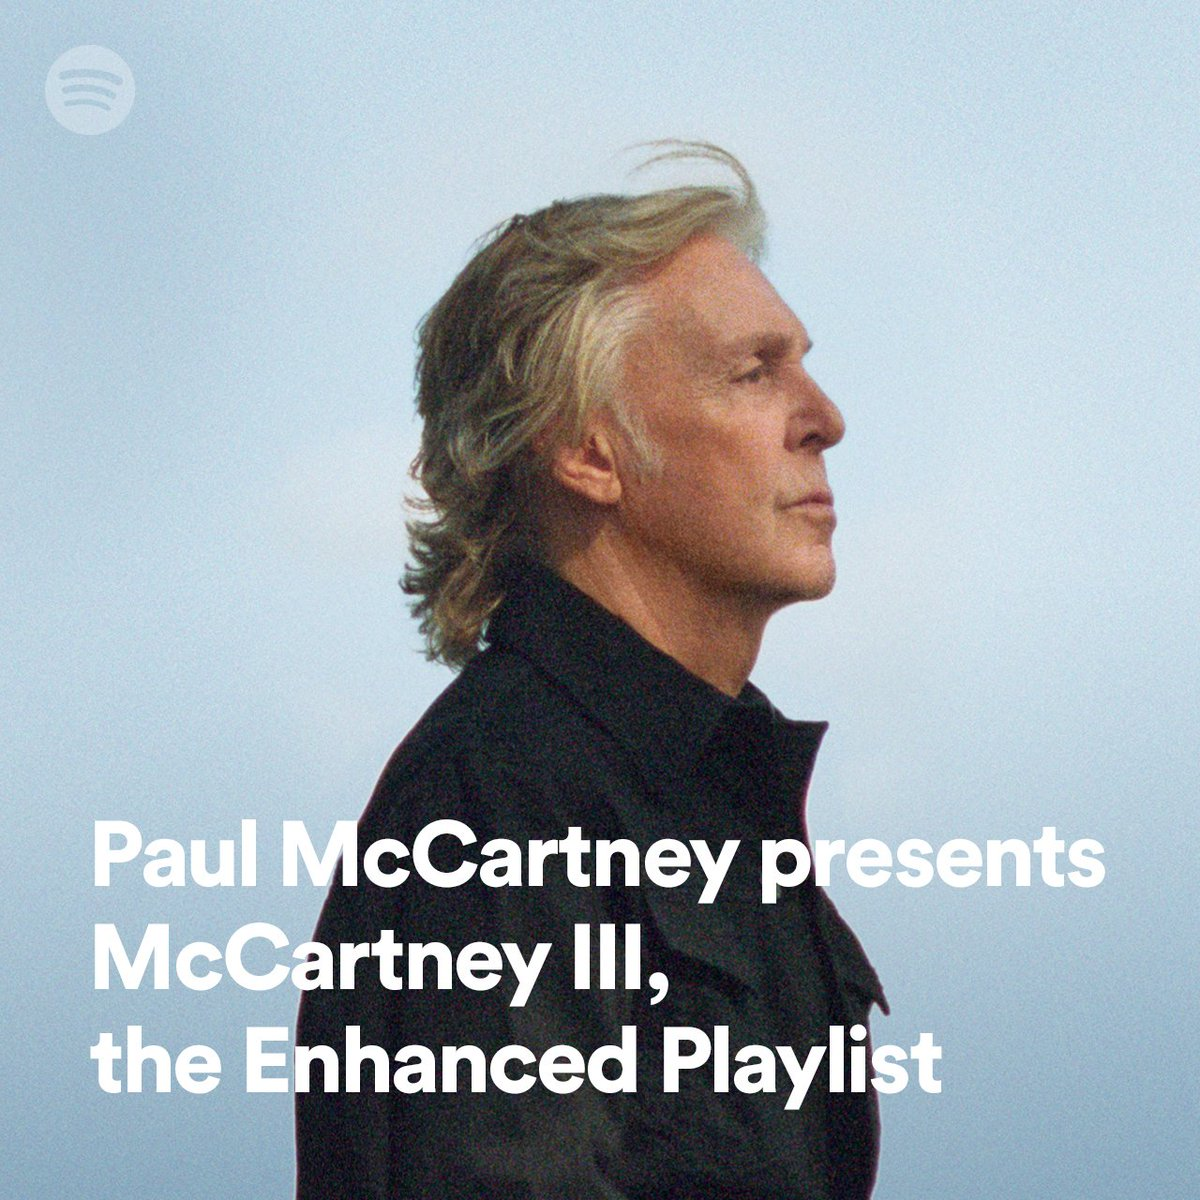 Sir @PaulMcCartney is sharing memories from his classic records McCartney and McCartney II. Hit play and reminisce in preparation for McCartney III 👉 https://t.co/U9e555barP https://t.co/FUCZtZjaH0